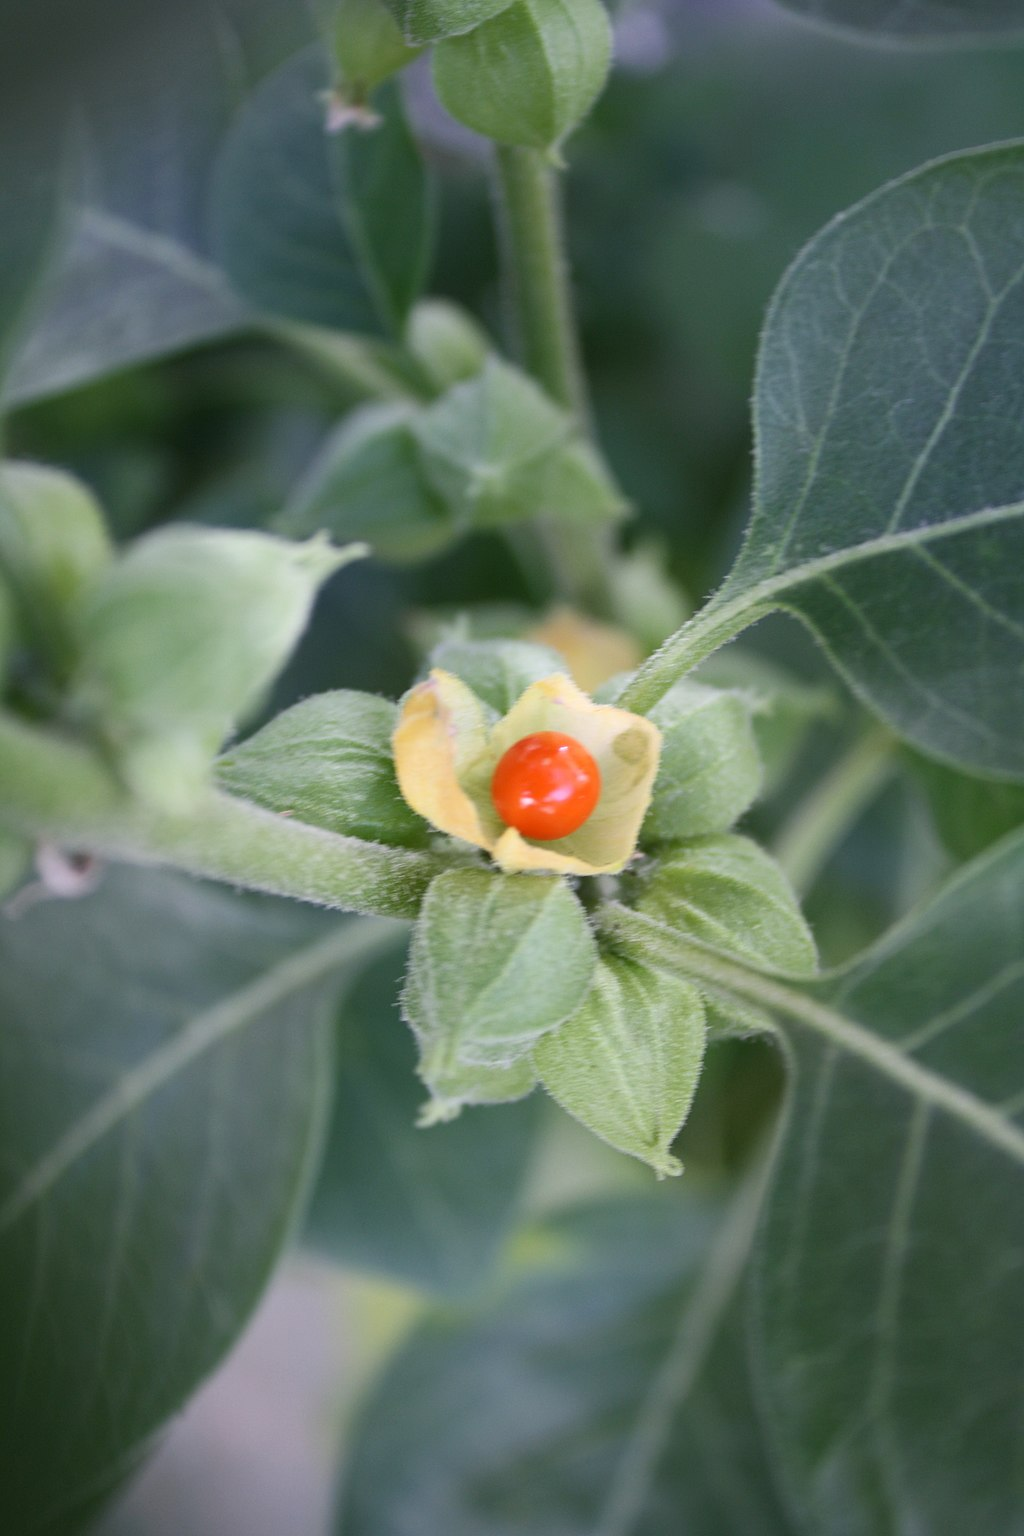 Description :Berry of the Withania somnifera plant.  Date 26 July 2012 Source Own work Author  Wowbobwow12